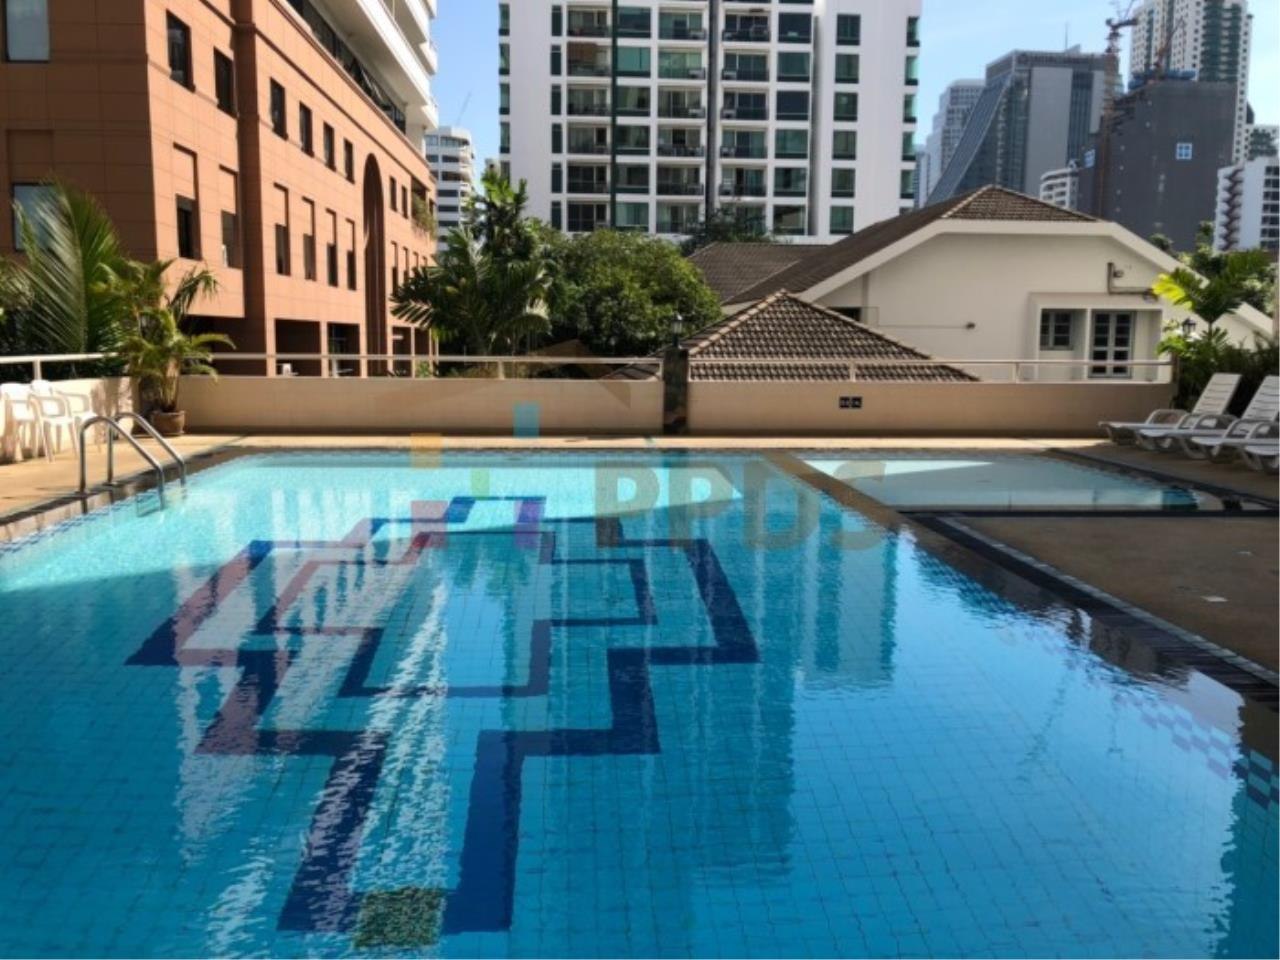 Propodyssey Agency's Sell 2 beds condo 175 sq.m with maid area at Prestige Tower Sukhumvit 23 14